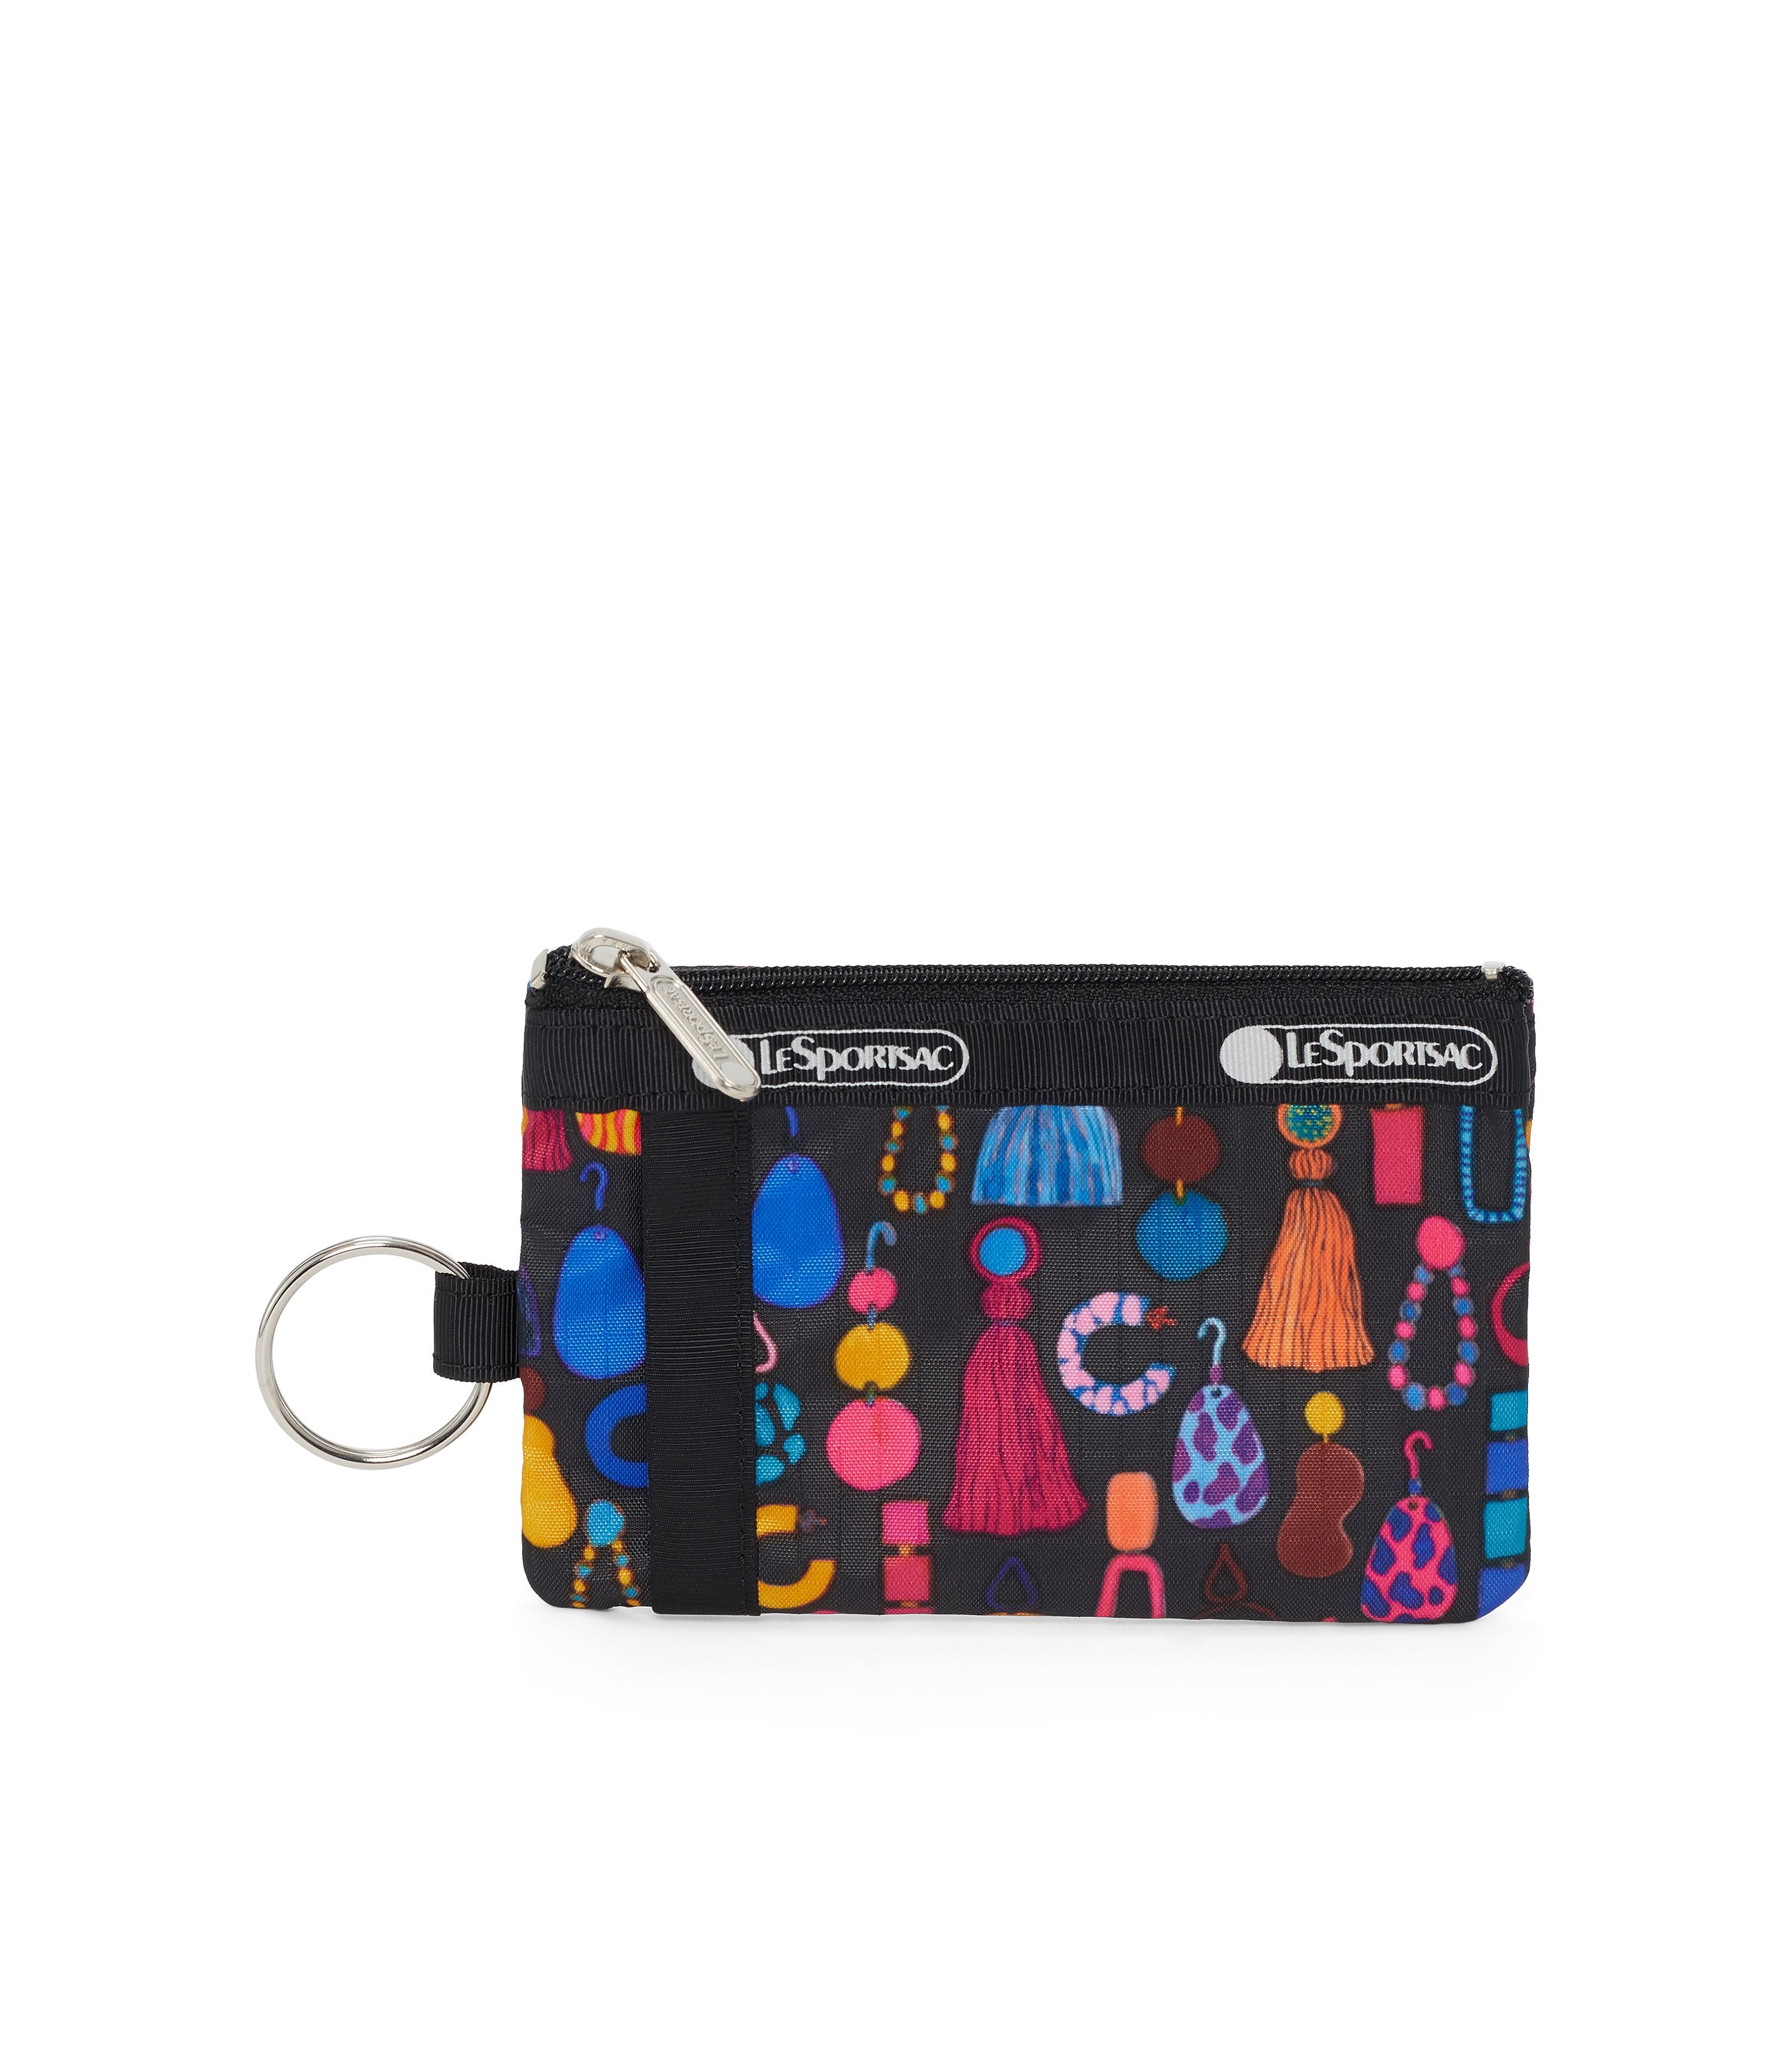 ID Card Case, Accessories and Cosmetic Bag, LeSportsac, Adorn print